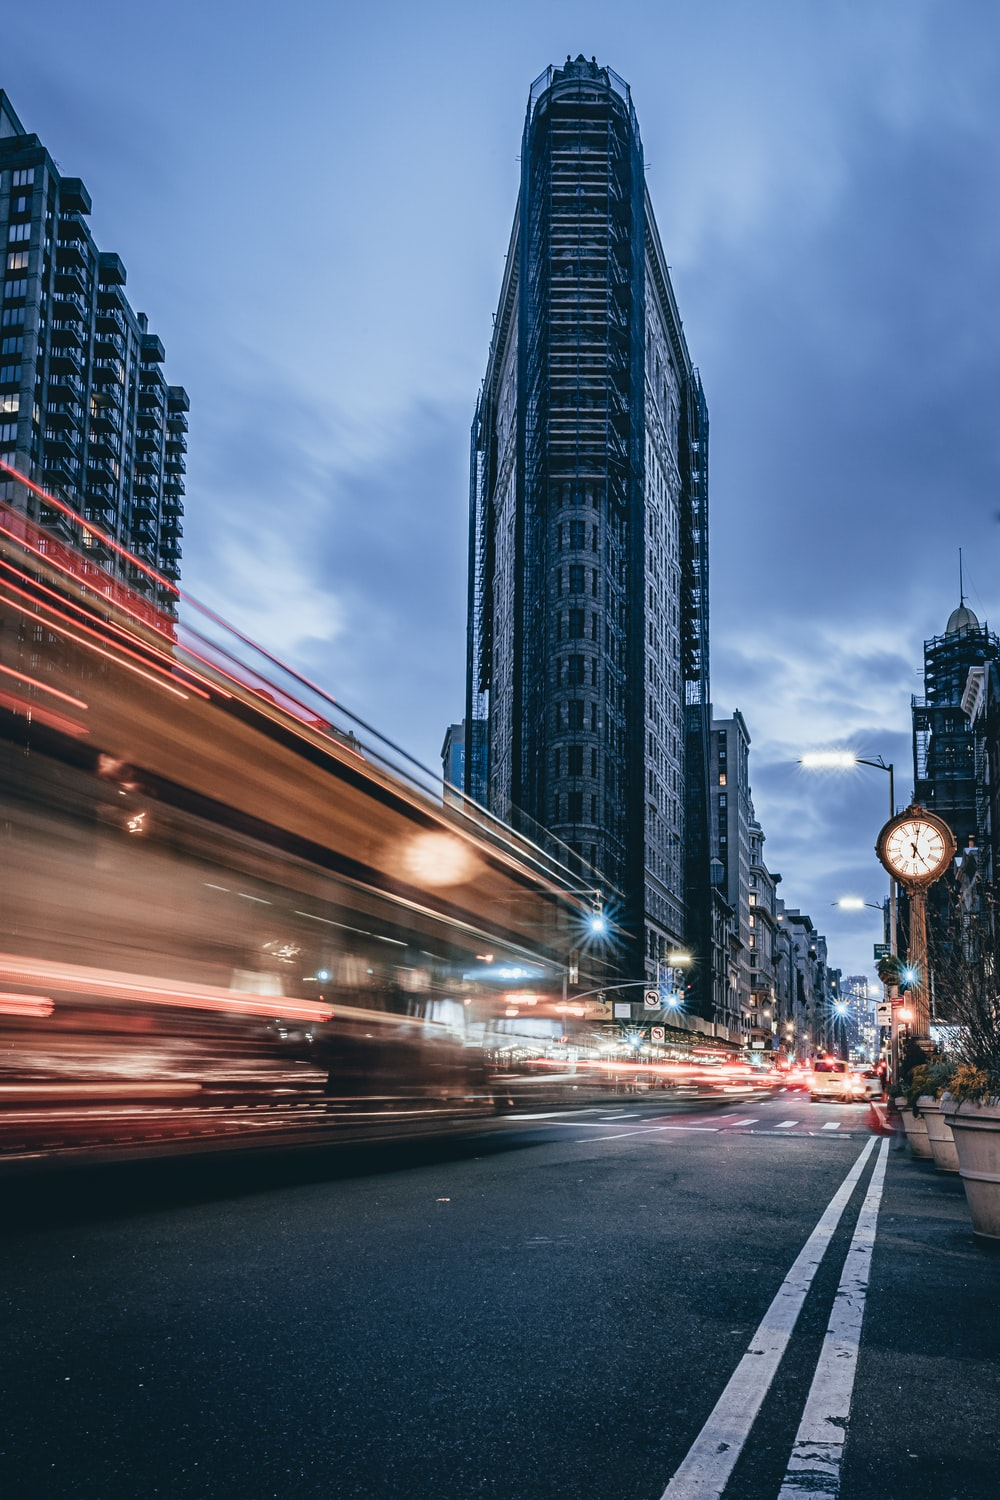 time-lapse photography of vehicles passing on road near Flat Iron building, New York